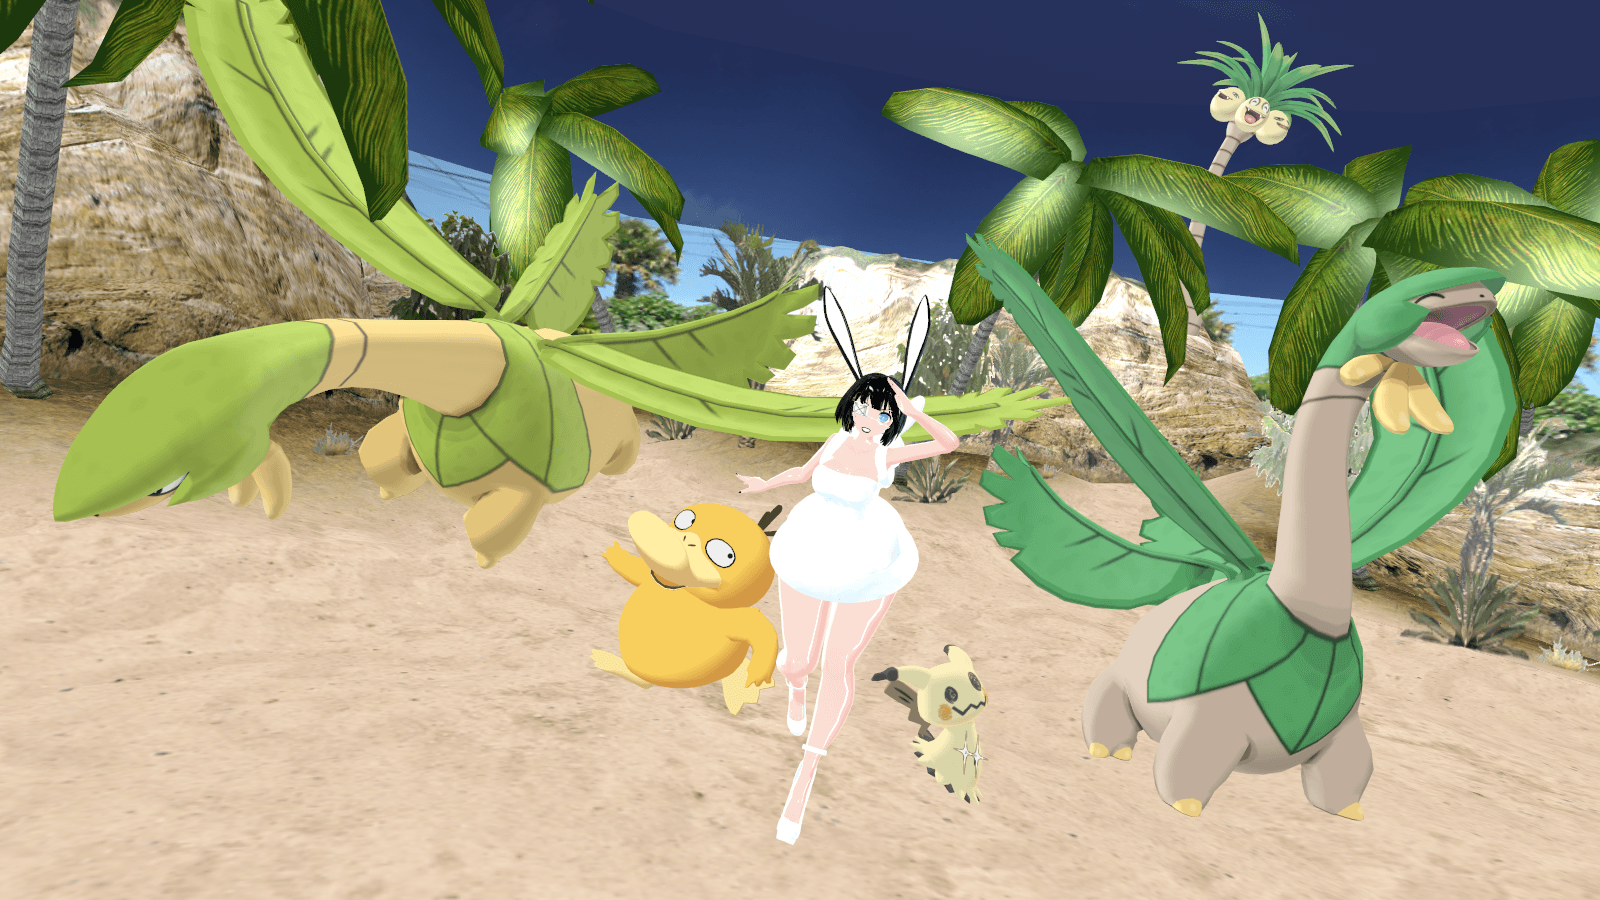 MMD - Tropius *DL* by Catty-Mintgum on DeviantArt